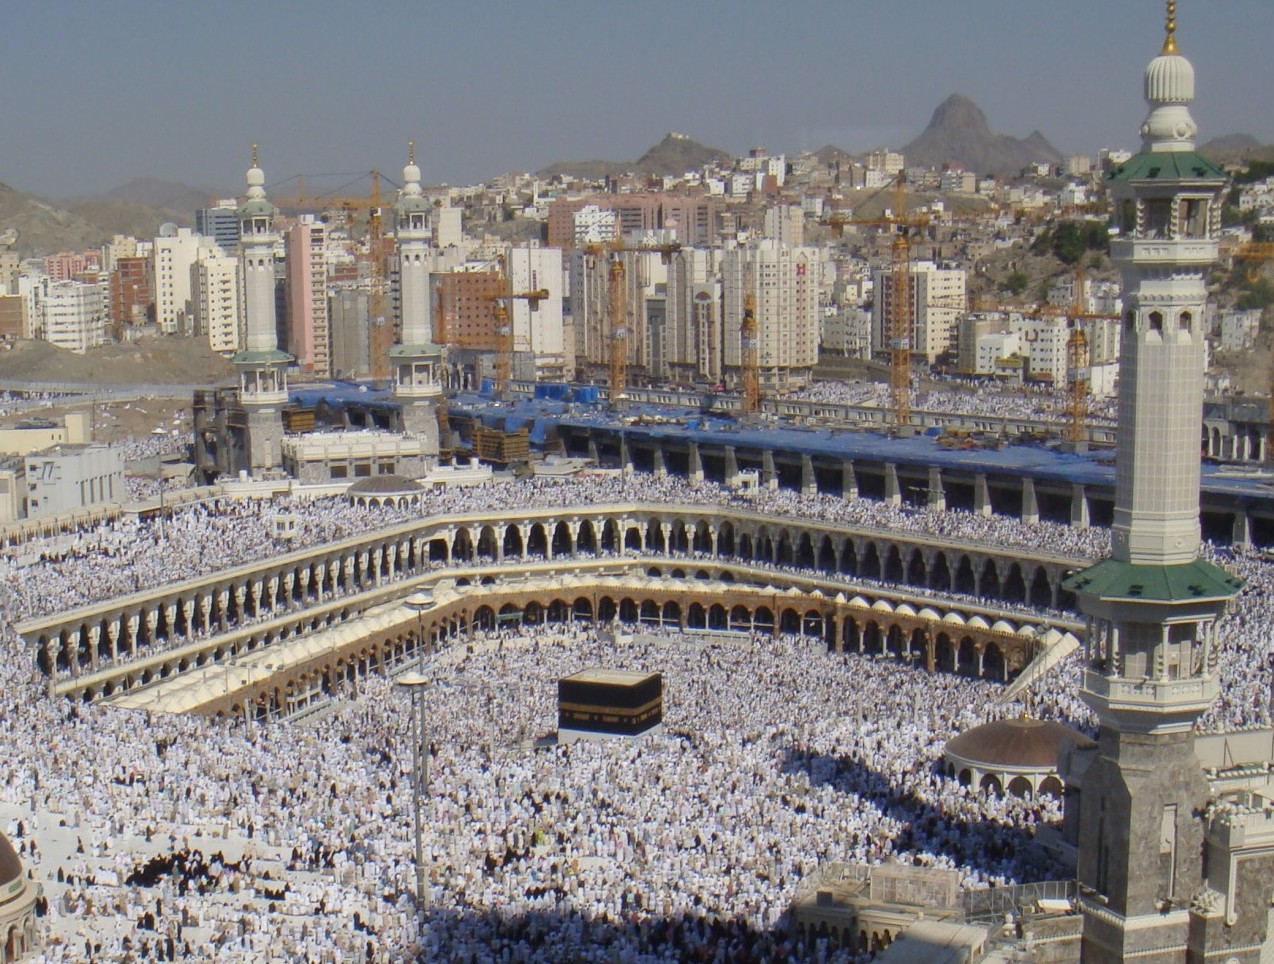 Al-Haram Mosque at the start of Hajj (2008). Source: Al Jazeera English, on Flickr. CC BY-SA 2.0.